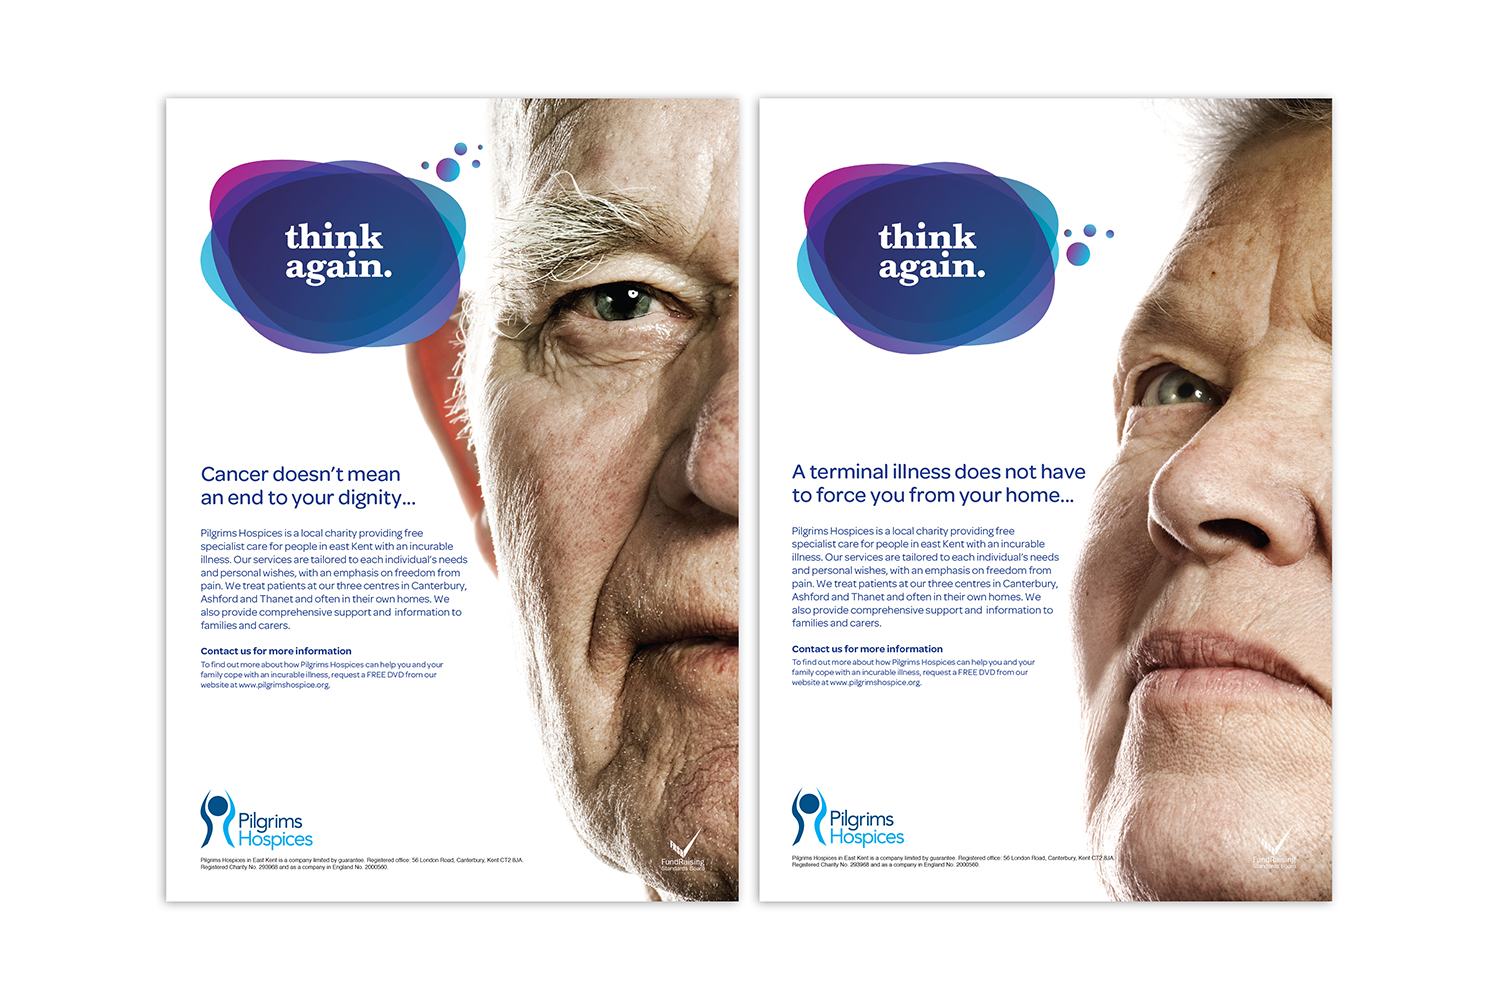 pilgrims_hospice_posters